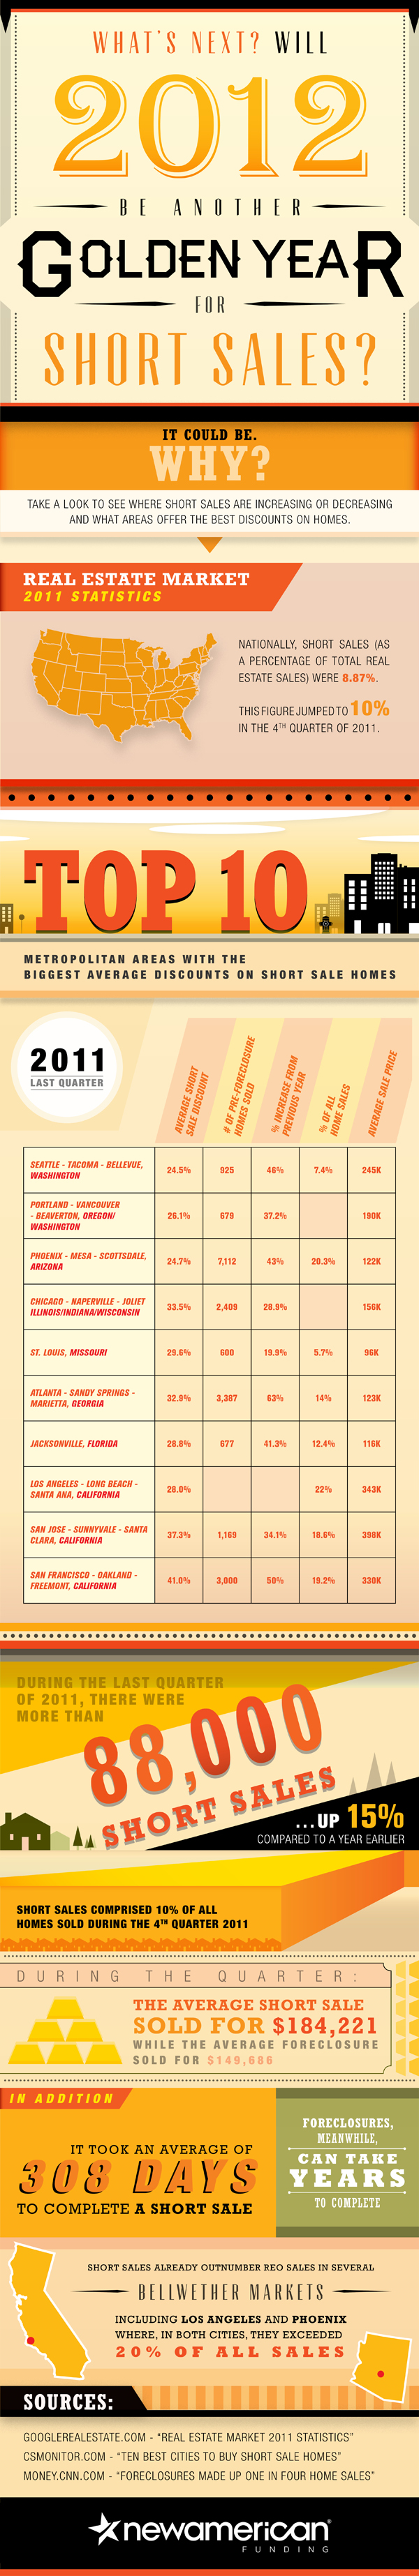 Will 2012 Be Another Golden Year for Short Sales